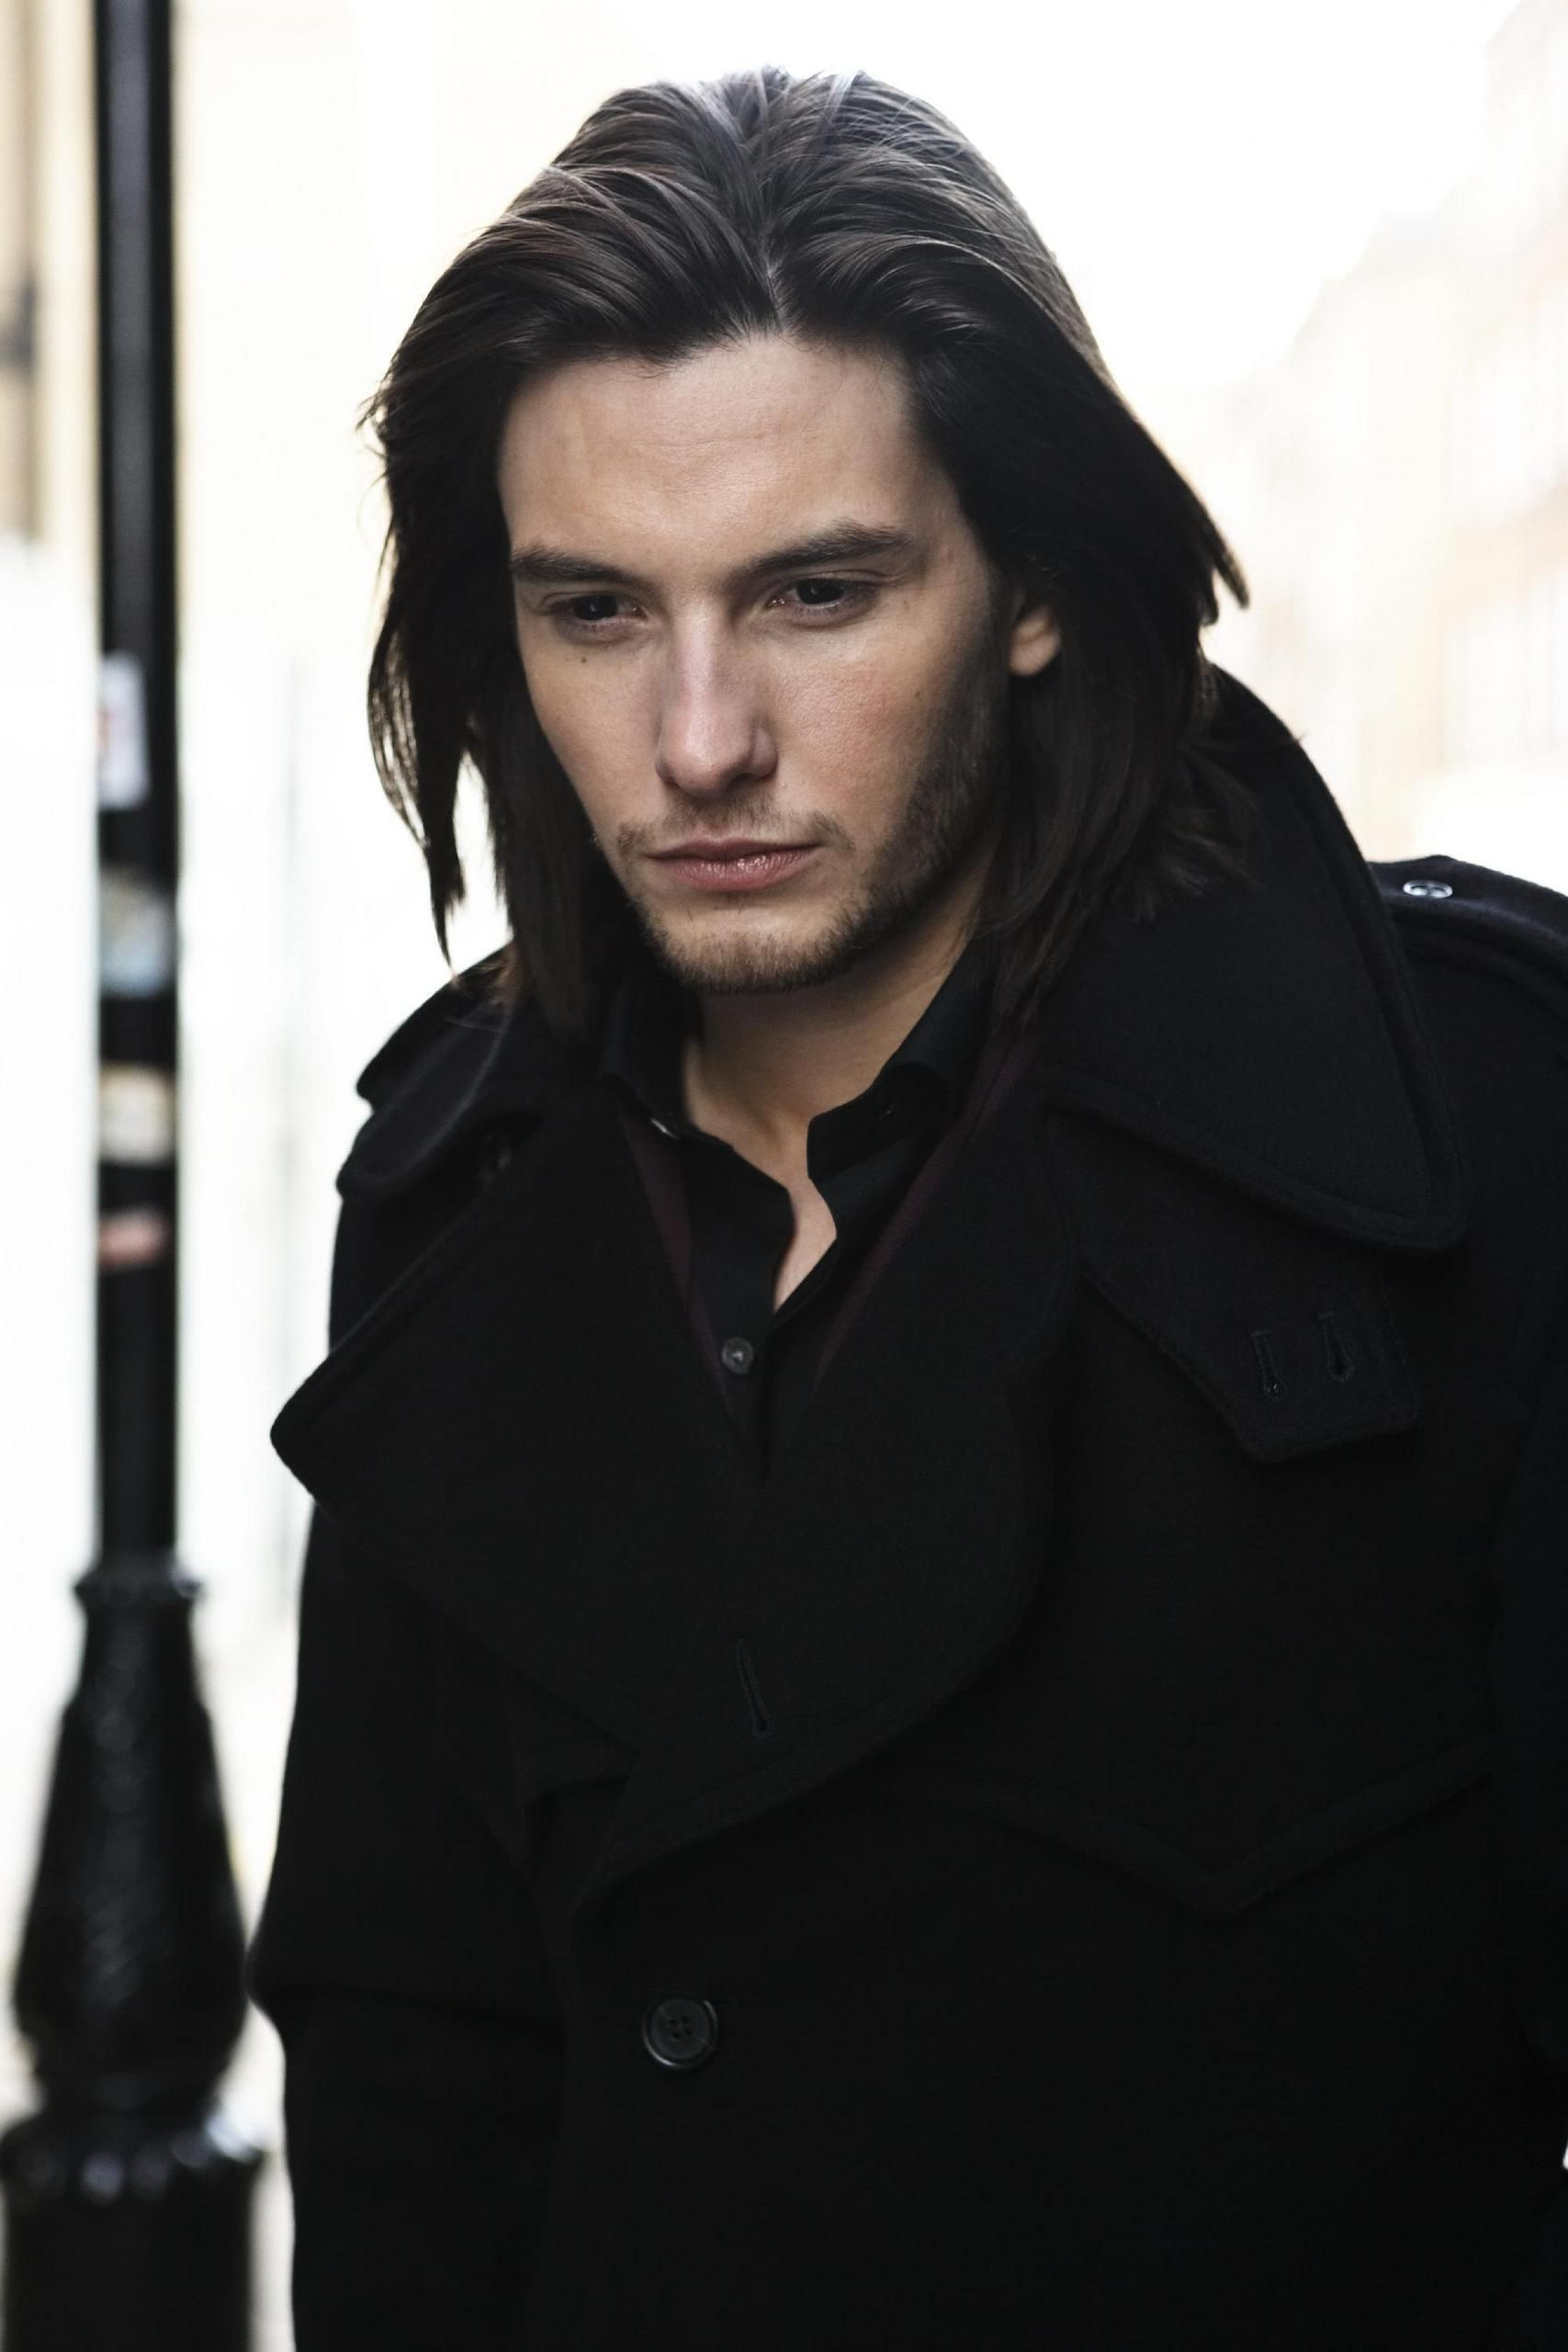 A fan Tweeted a pic of Ben Barnes as a suggestion for Akkarin. Maybe when he's a little bit older...